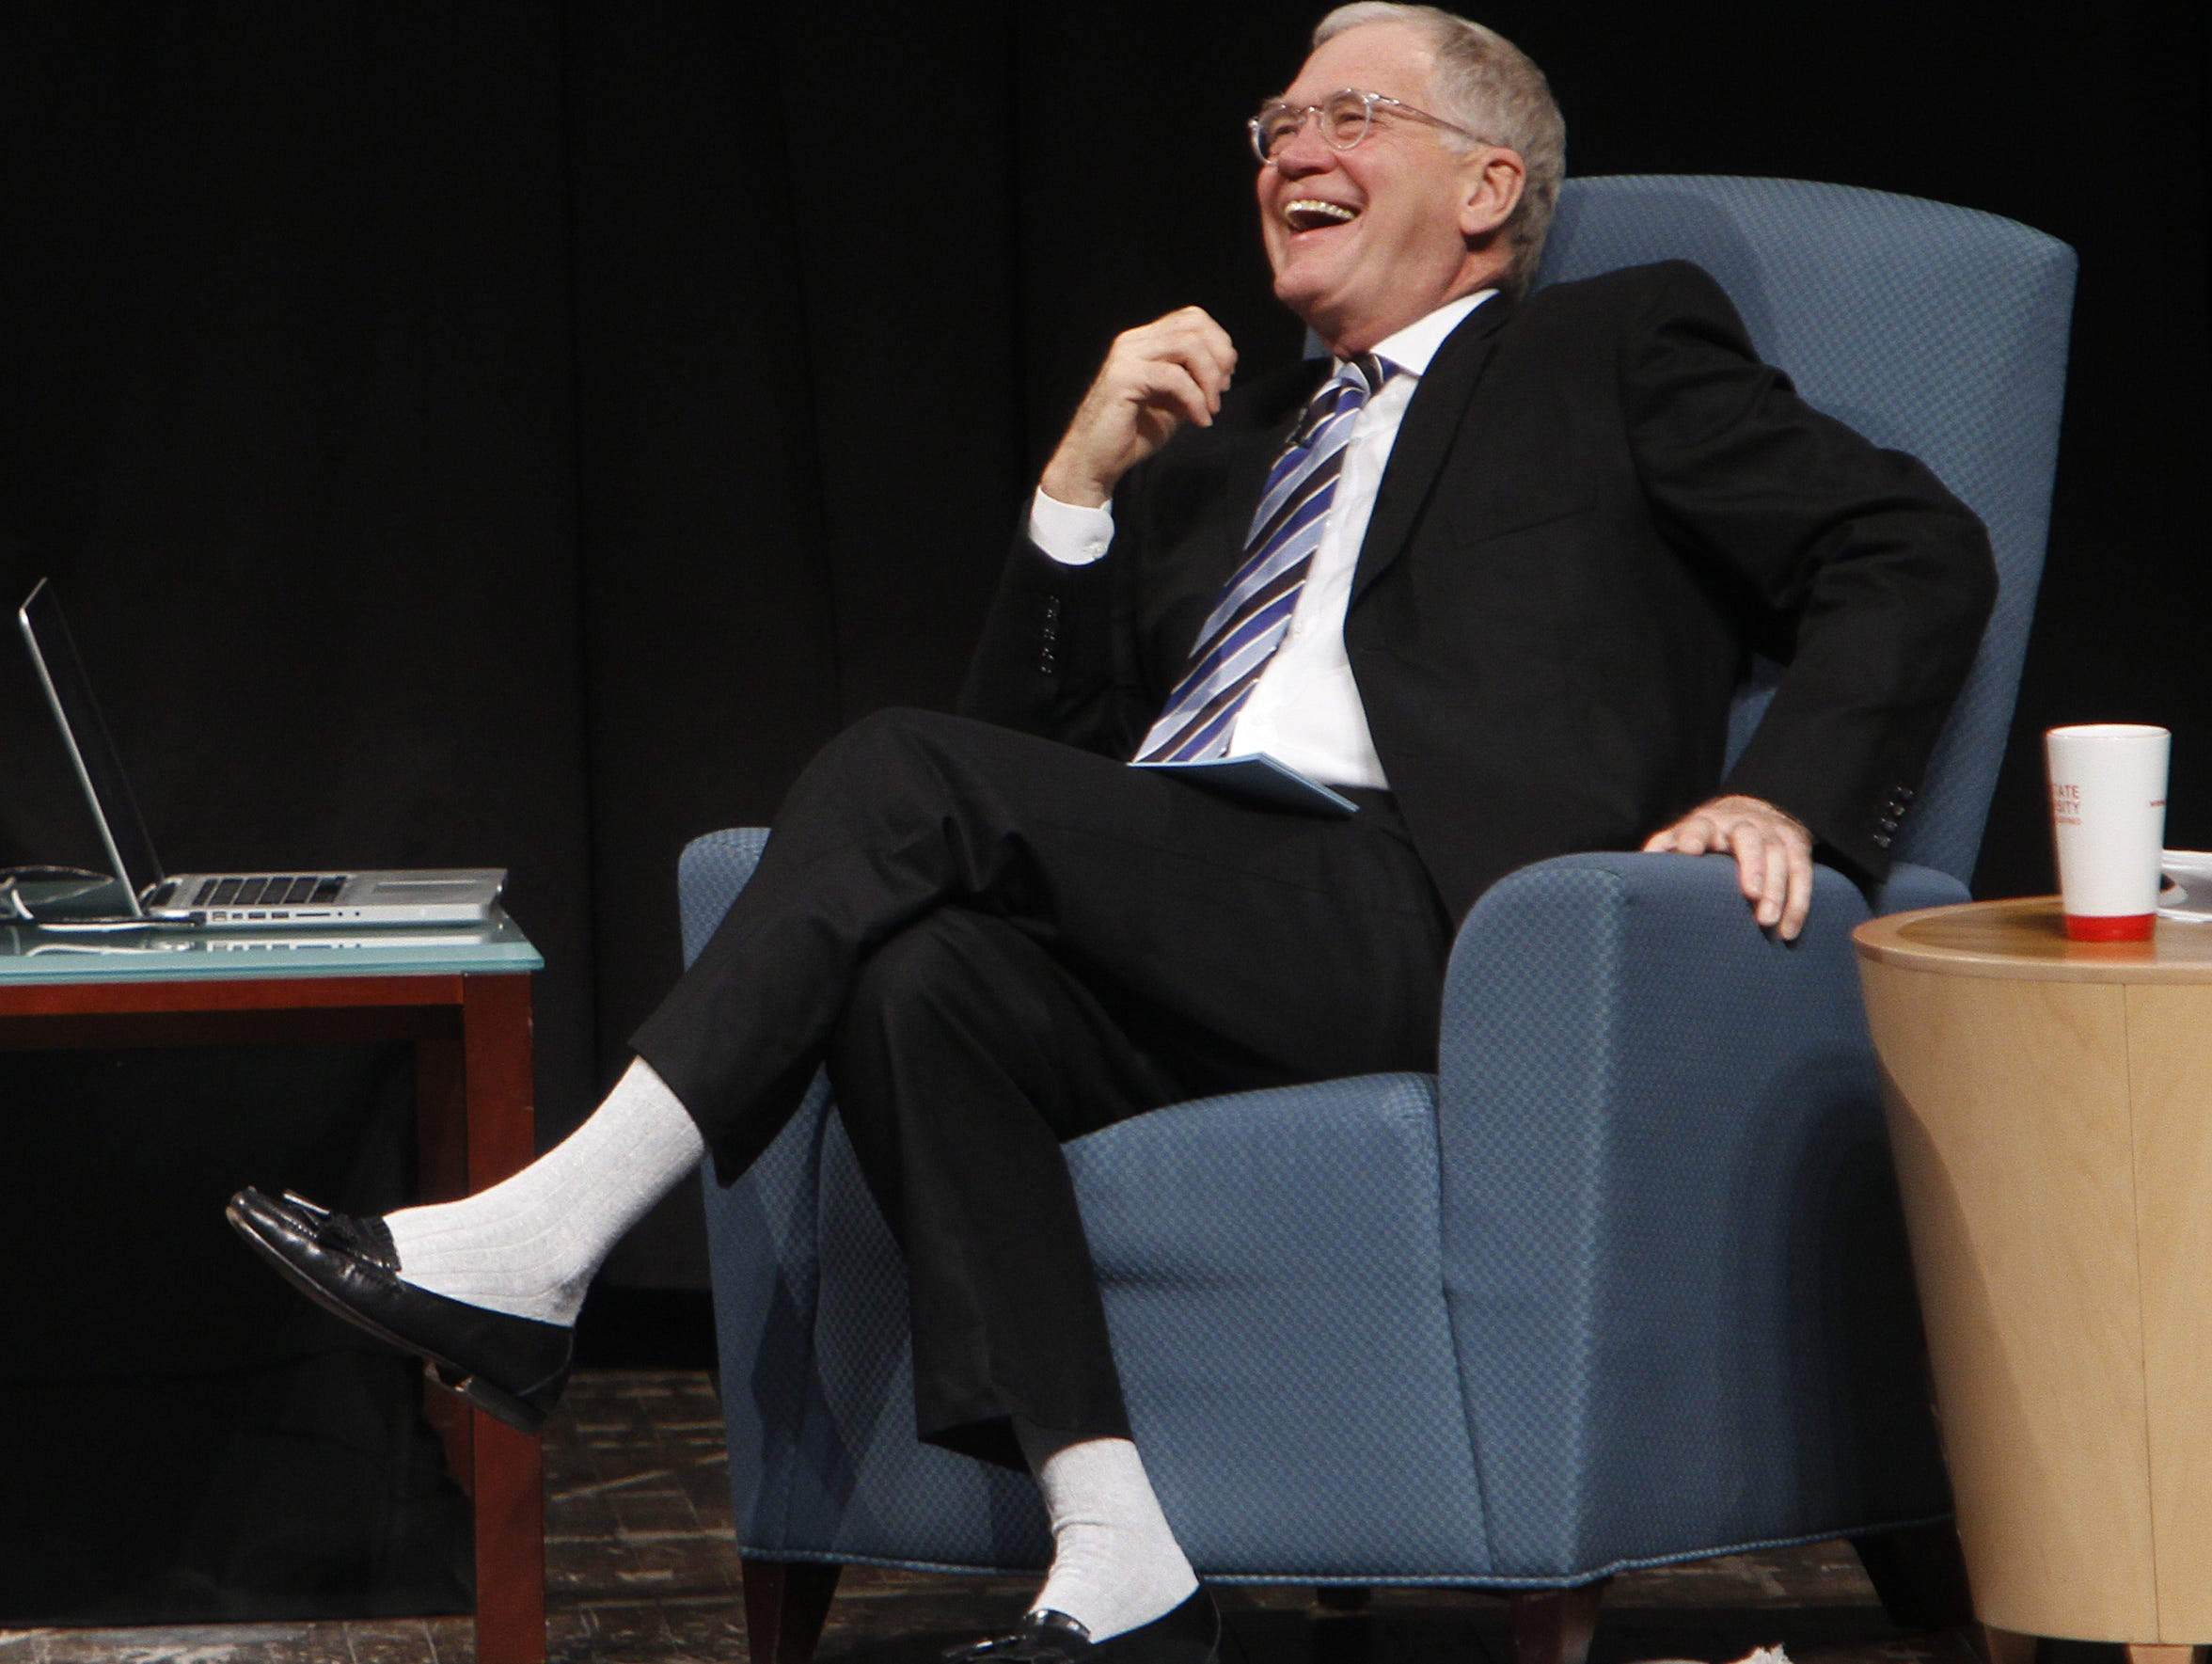 David Letterman chats with Rachel Maddow at Ball State's